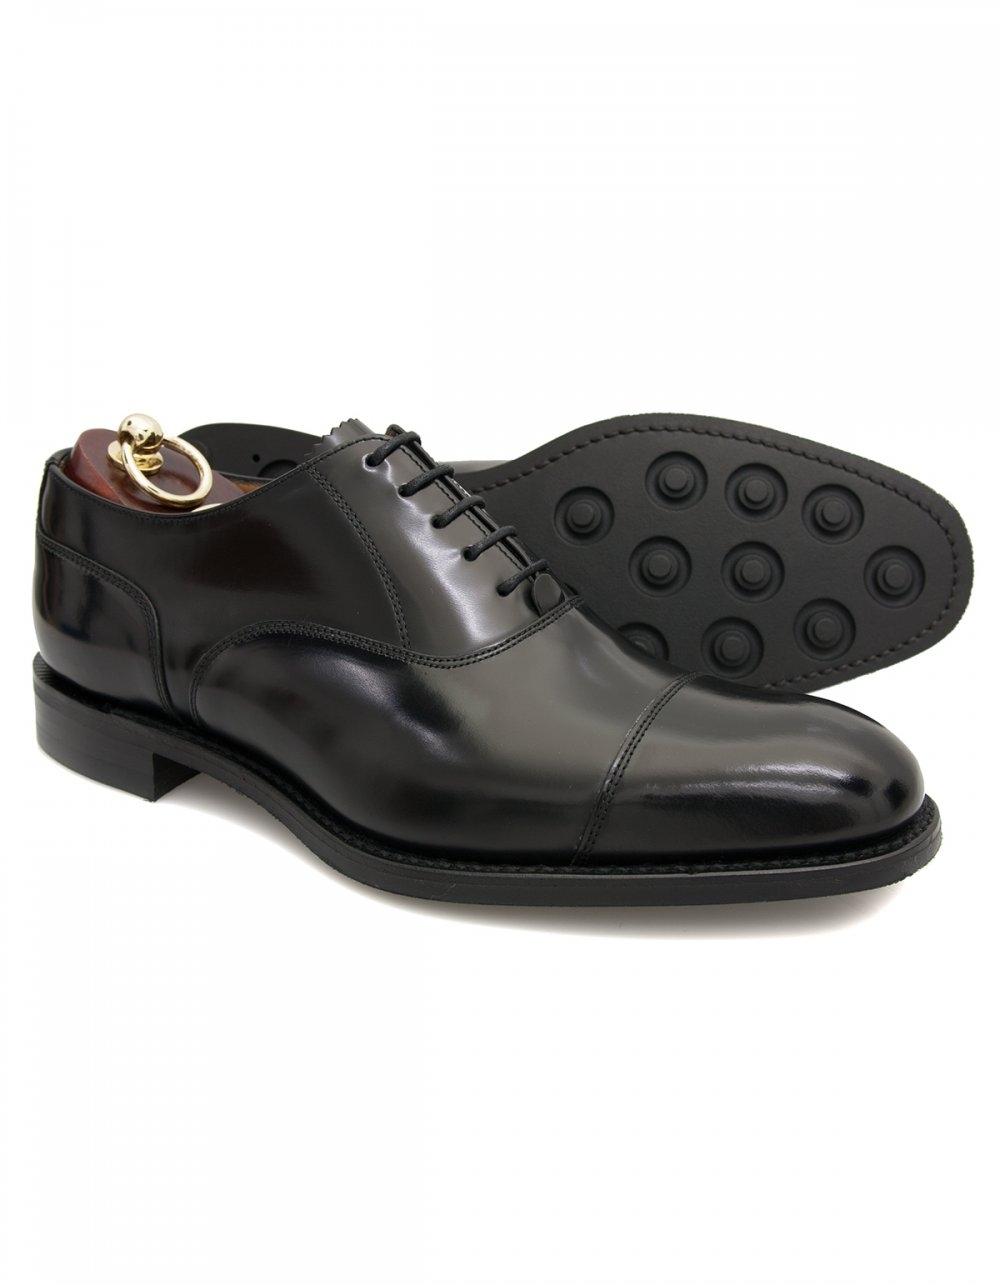 2926b684cd78d Loake 806 Black Oxford Toe Cap with Rubber Stud Soles